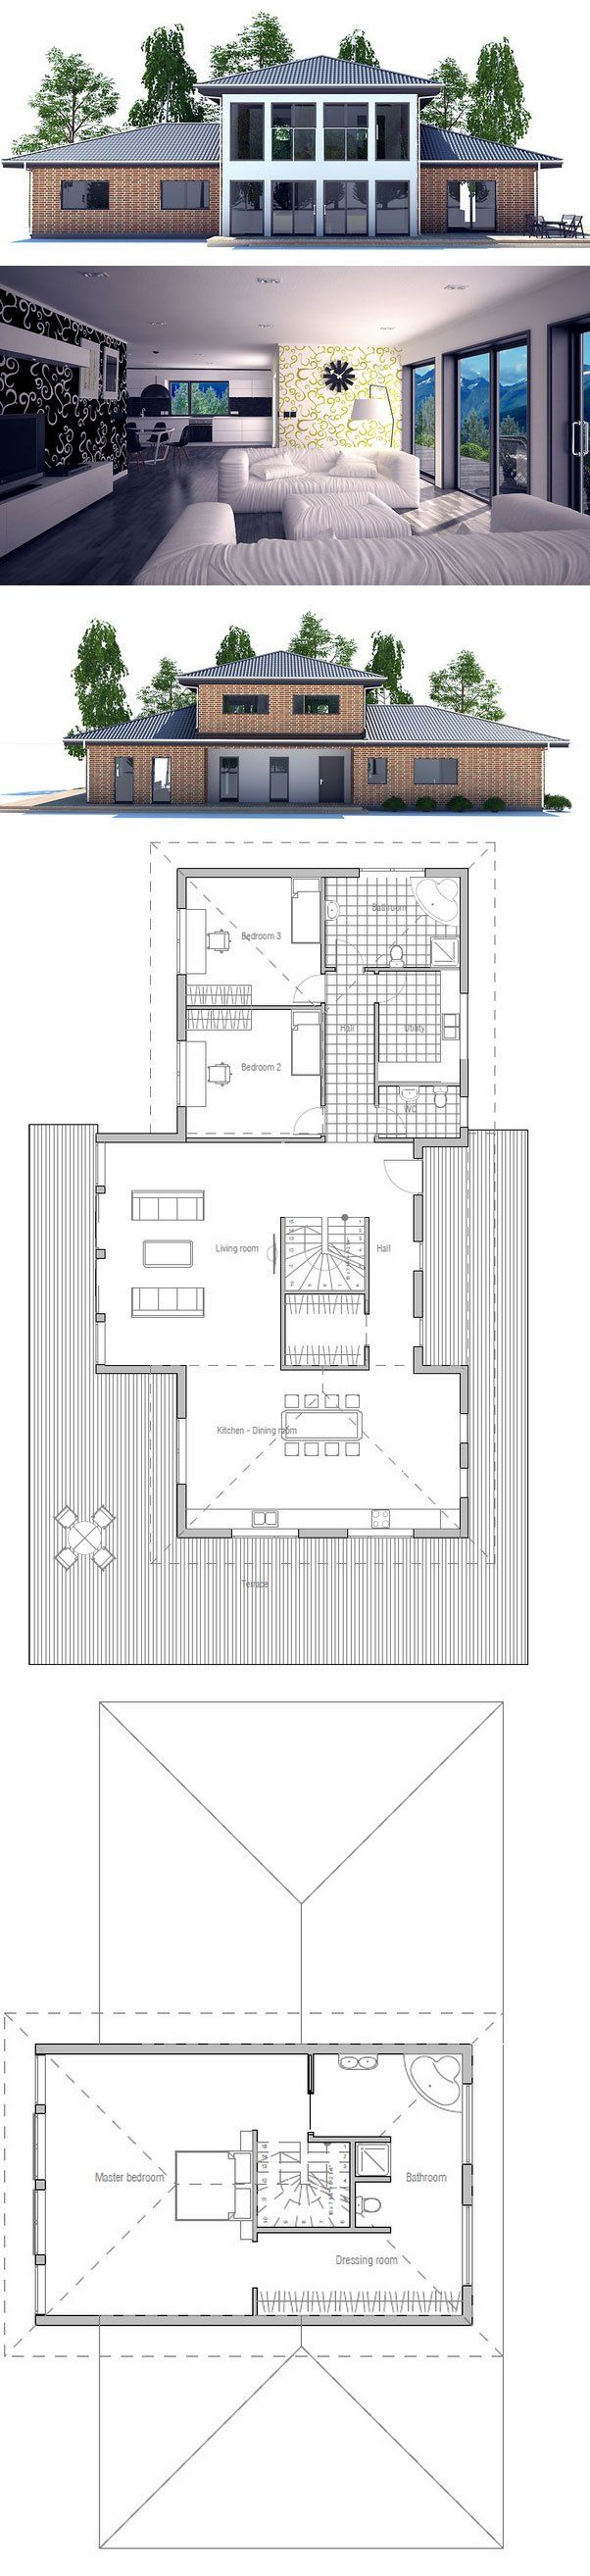 Large bathroom floor plans - Modern House Plan With Large Living Room And Spacious Kitchen Three Bedrooms Extra Large